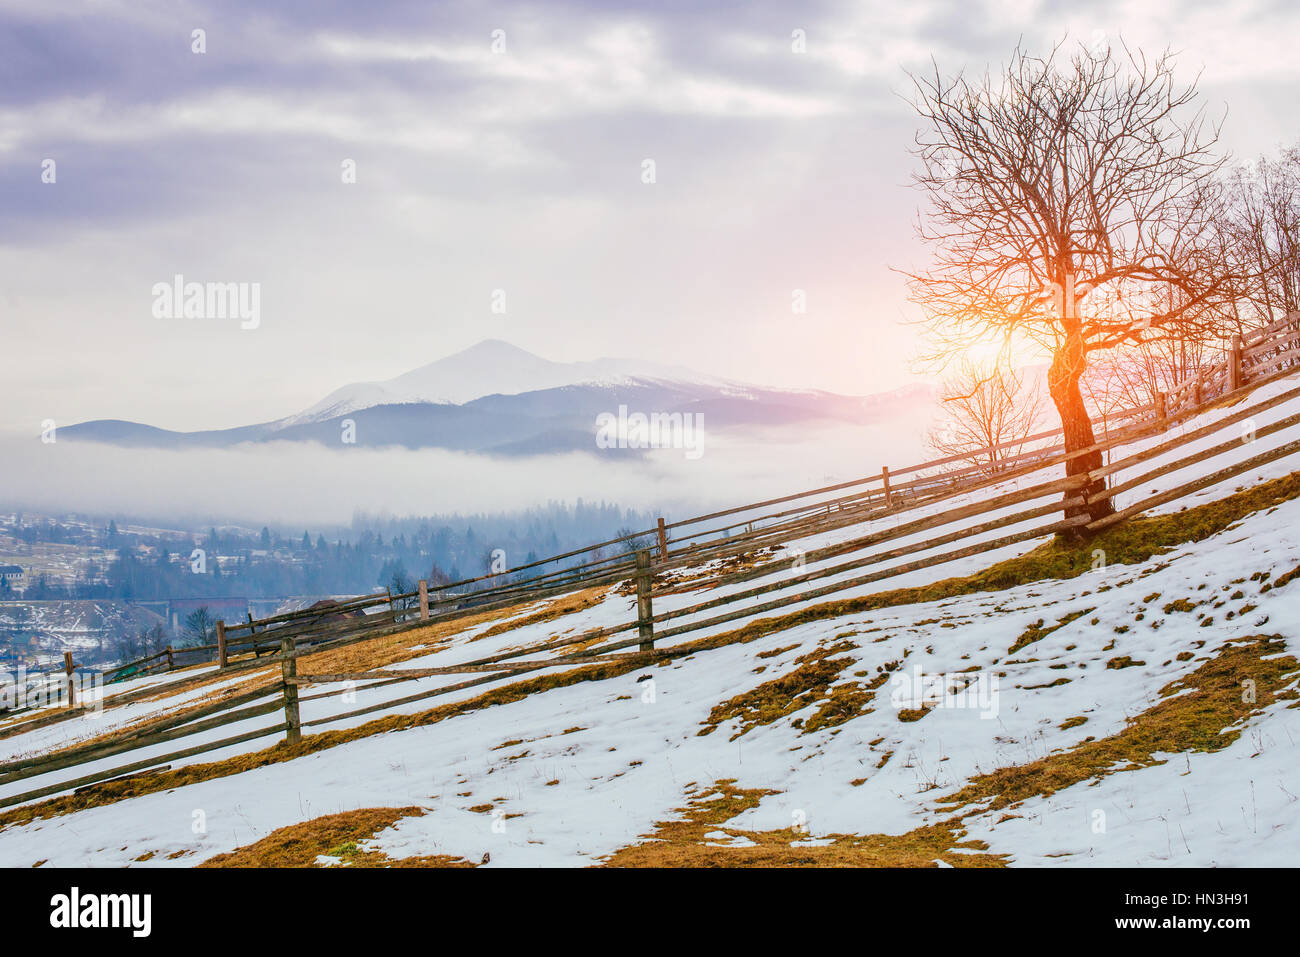 the beginning of spring in the mountains - Stock Image